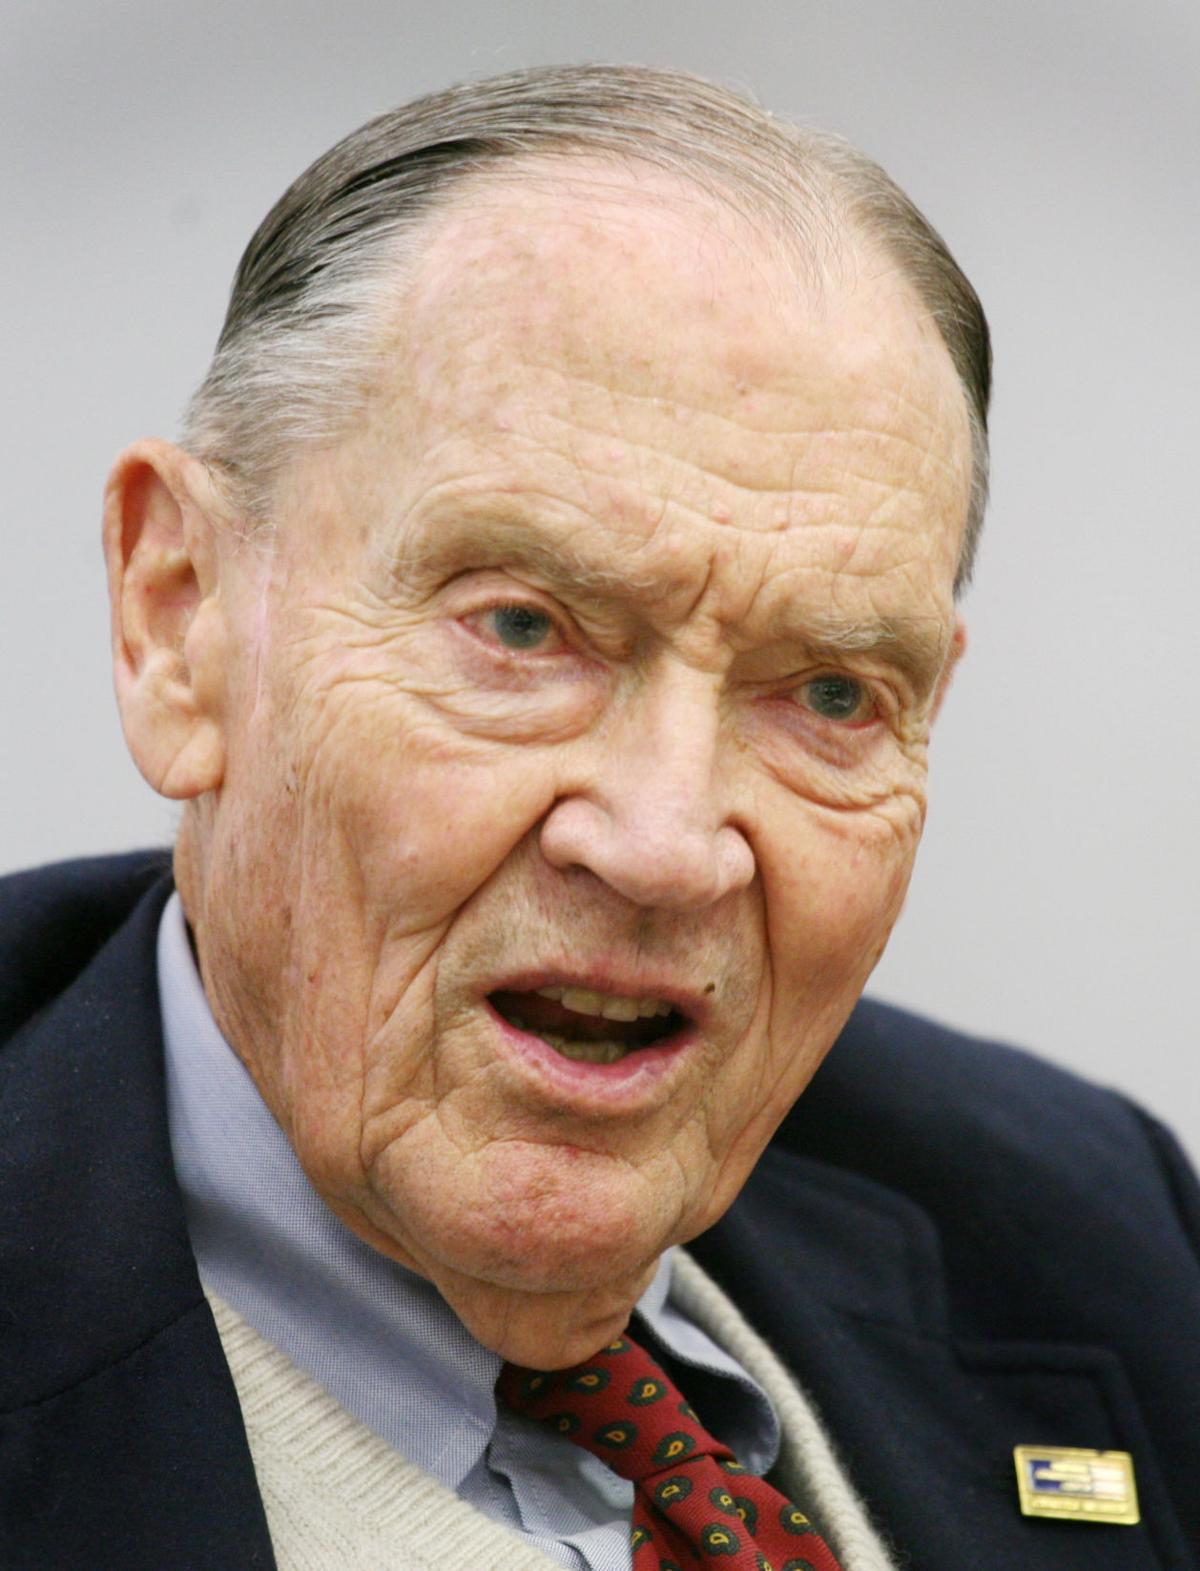 At odds over money-market reform Vanguard founder Bogle says it time to end 'illusion' of fixed-asset value of funds